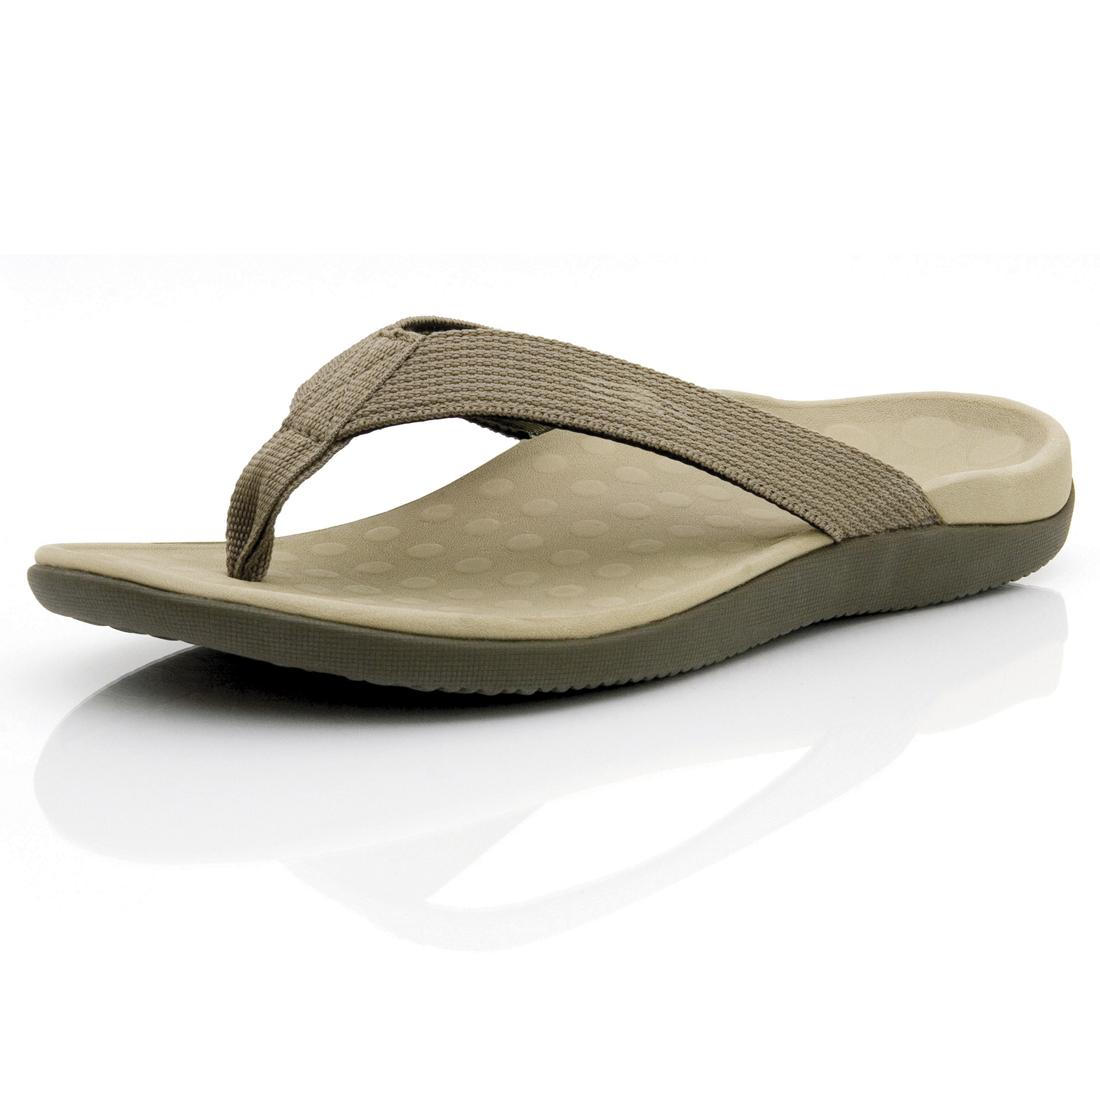 Orthaheel Wave - Motion Control Flip Flop -  - Men - Women at Sears.com